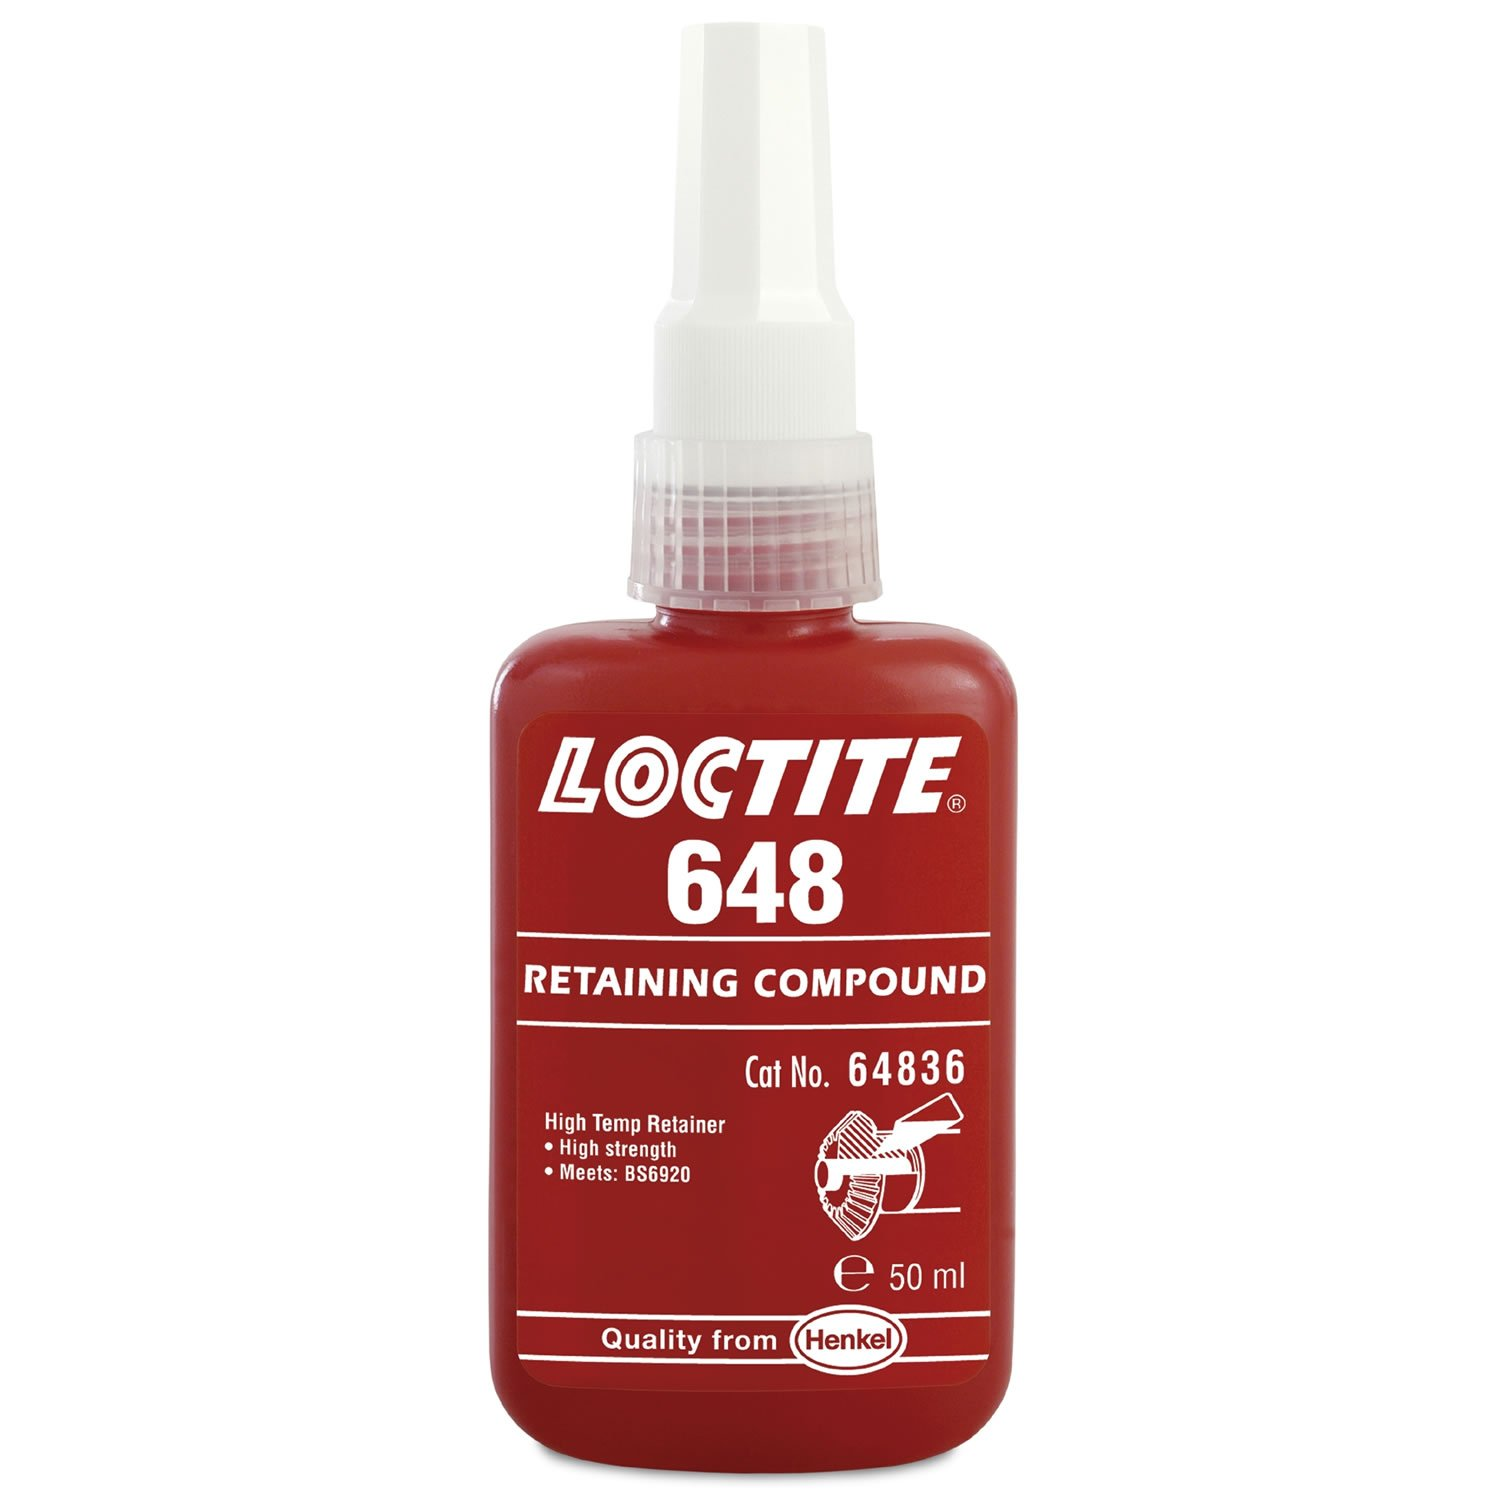 648 Retaining Finally popular brand Compound 50 mL Bottle Spring new work one after another Green